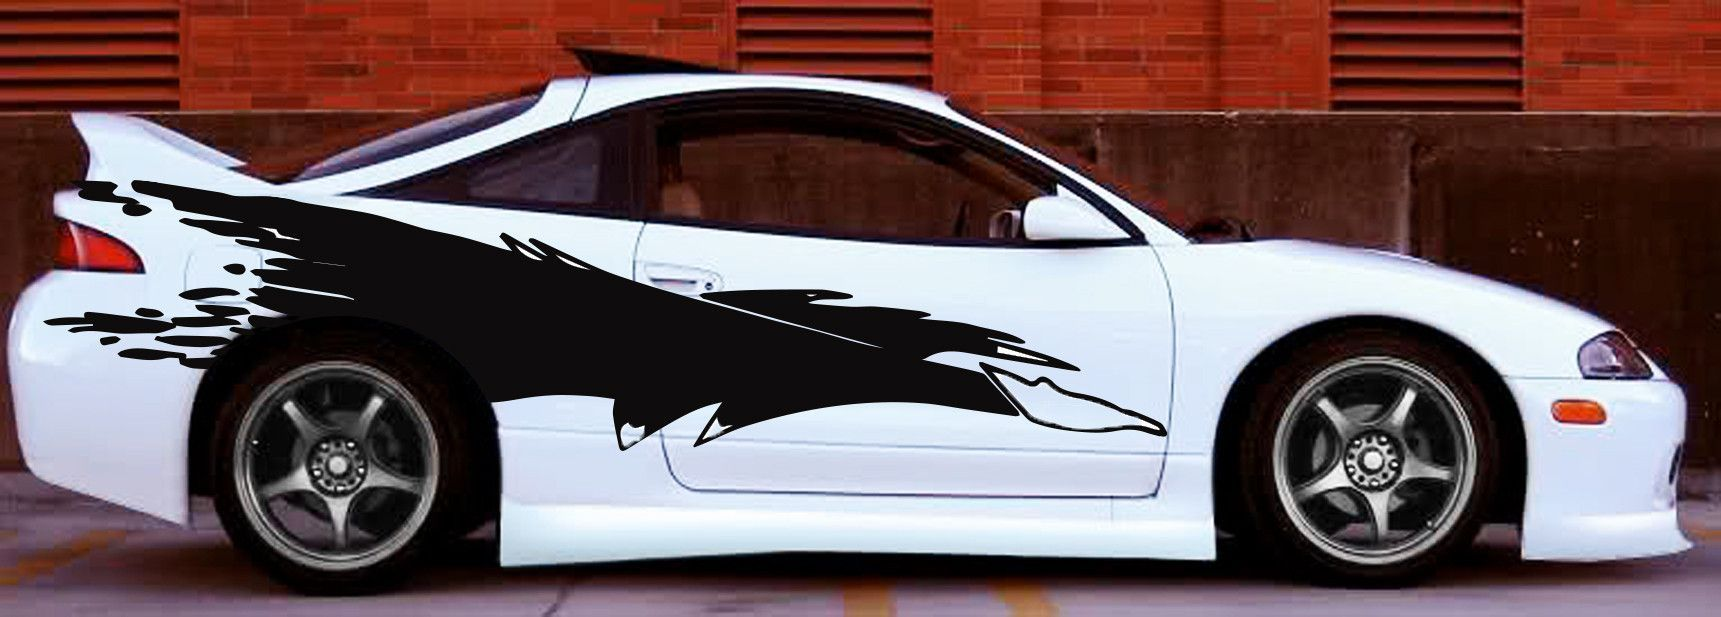 Bon Mitsubishi Eclipse Fast And Furious Side Graphics